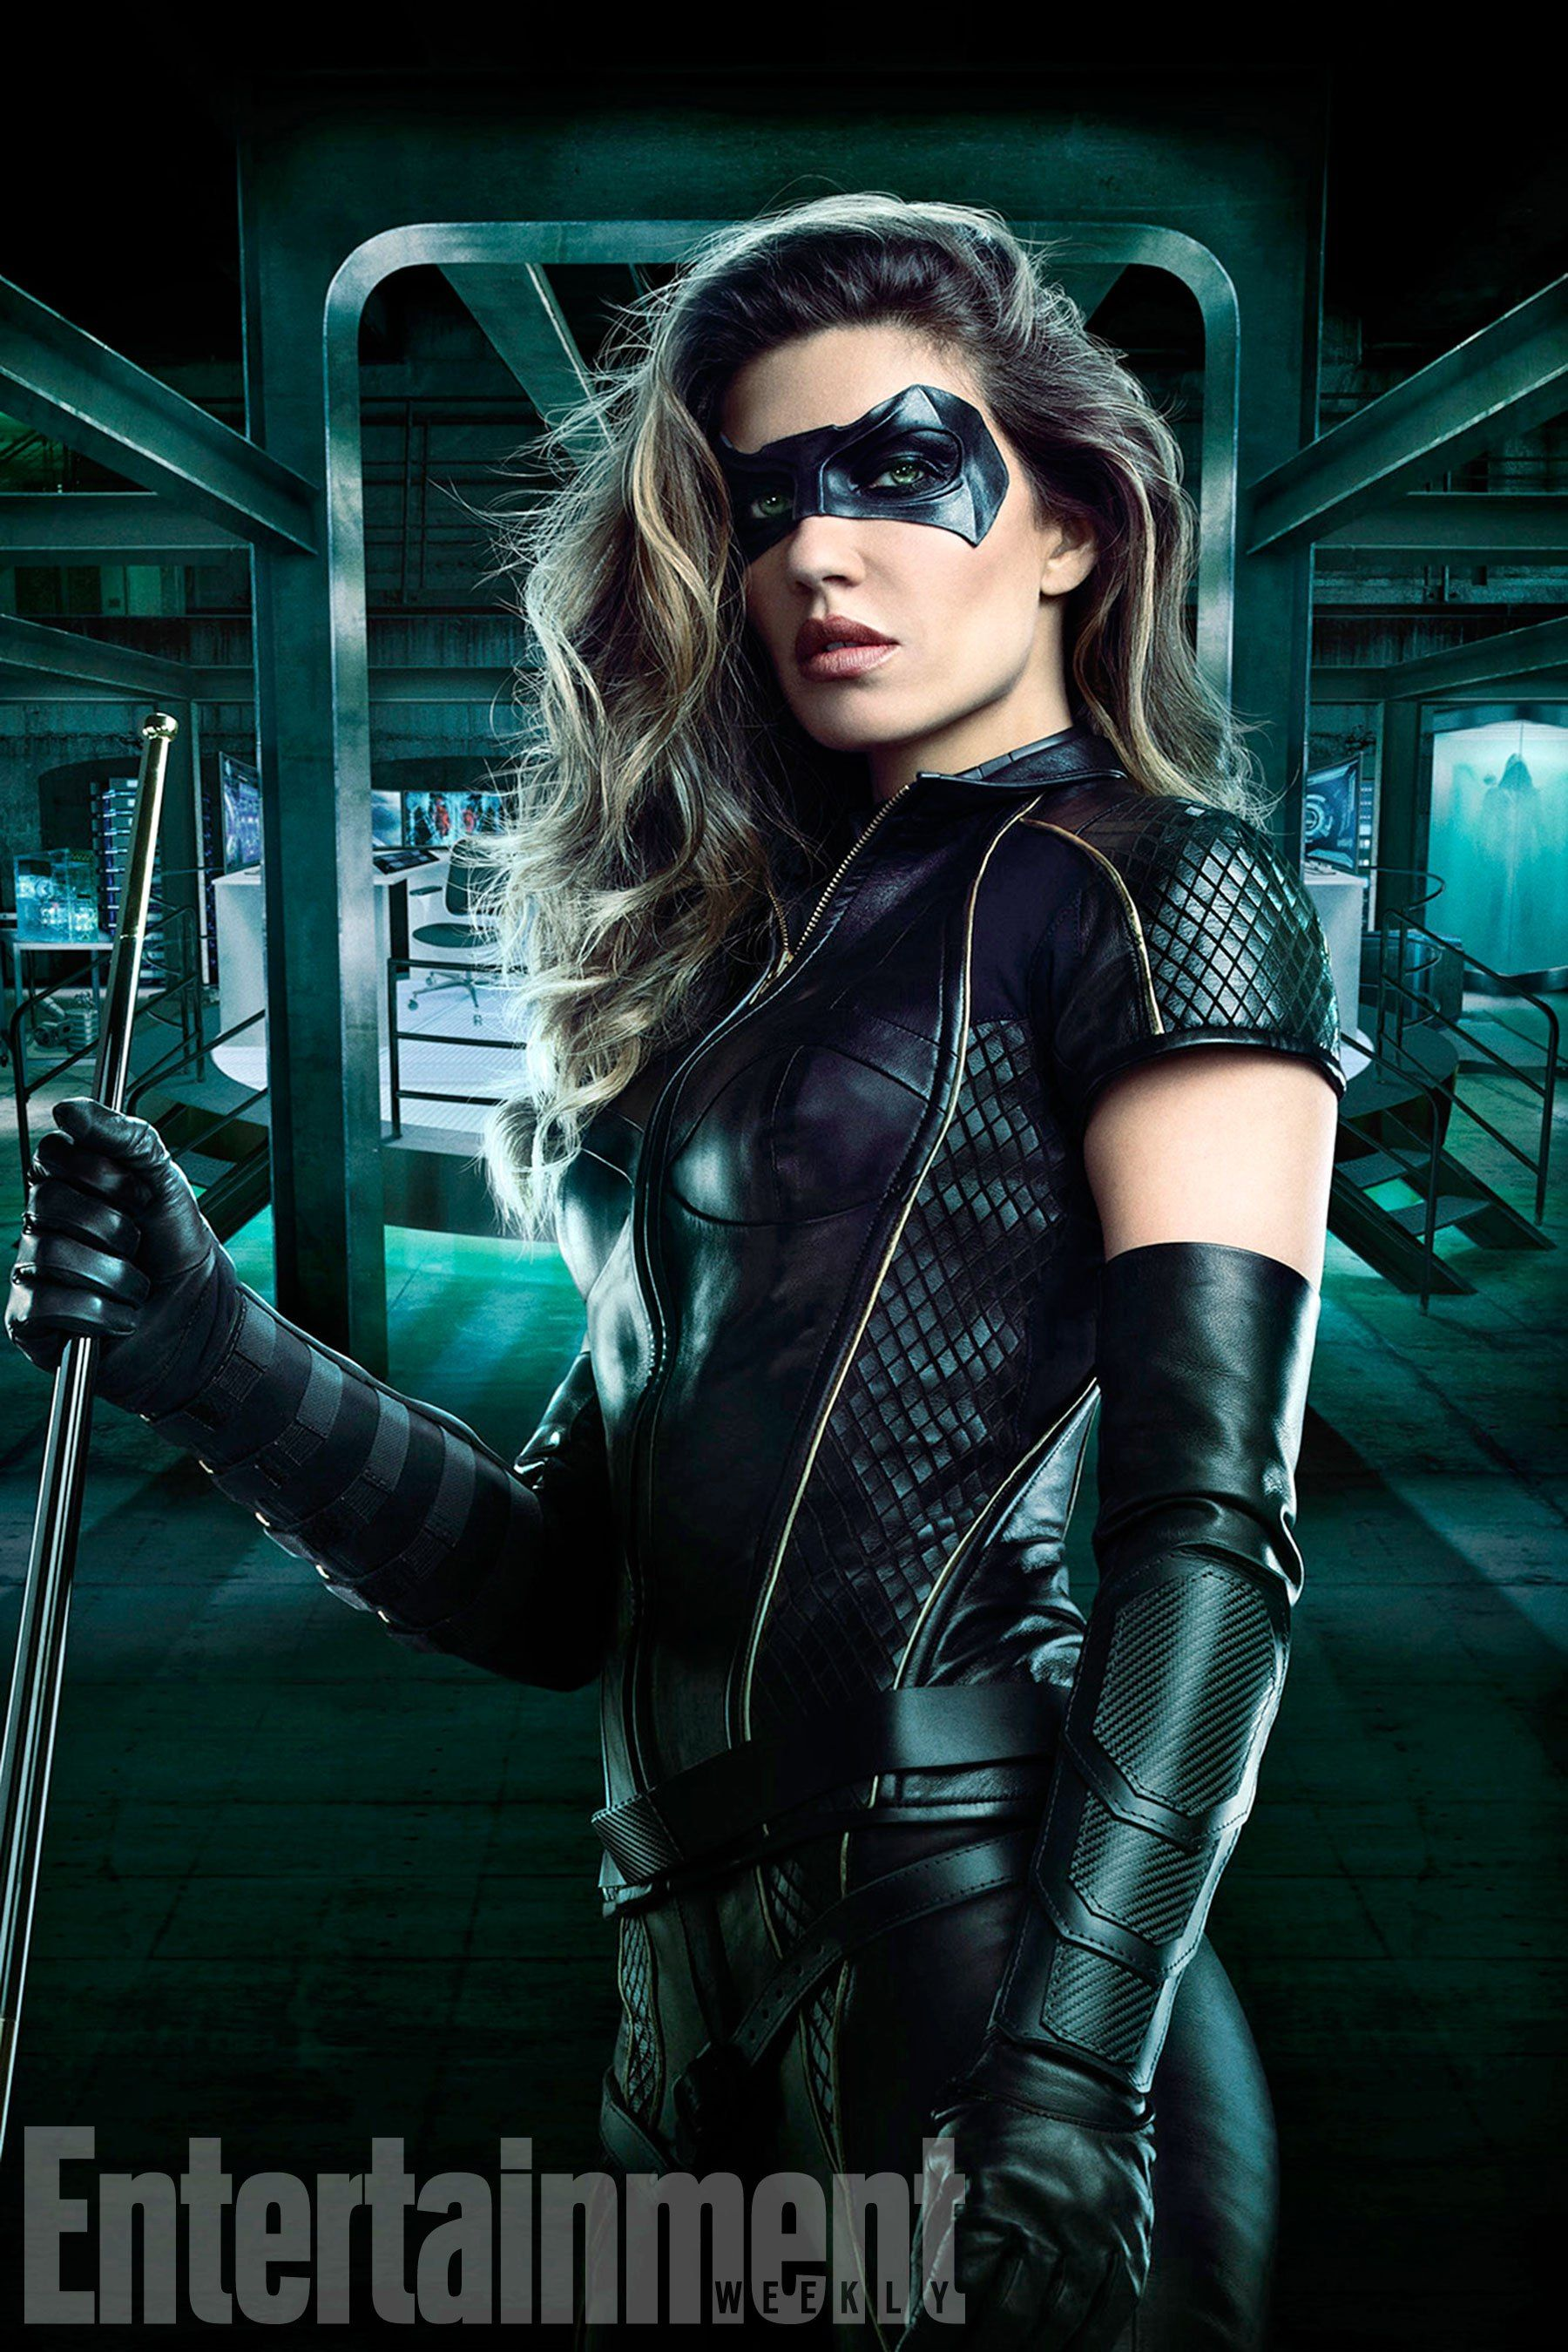 8b59e7fbd ARROW Season 6 Image Gives Us Our First Look At Dinah Drake Suited ...